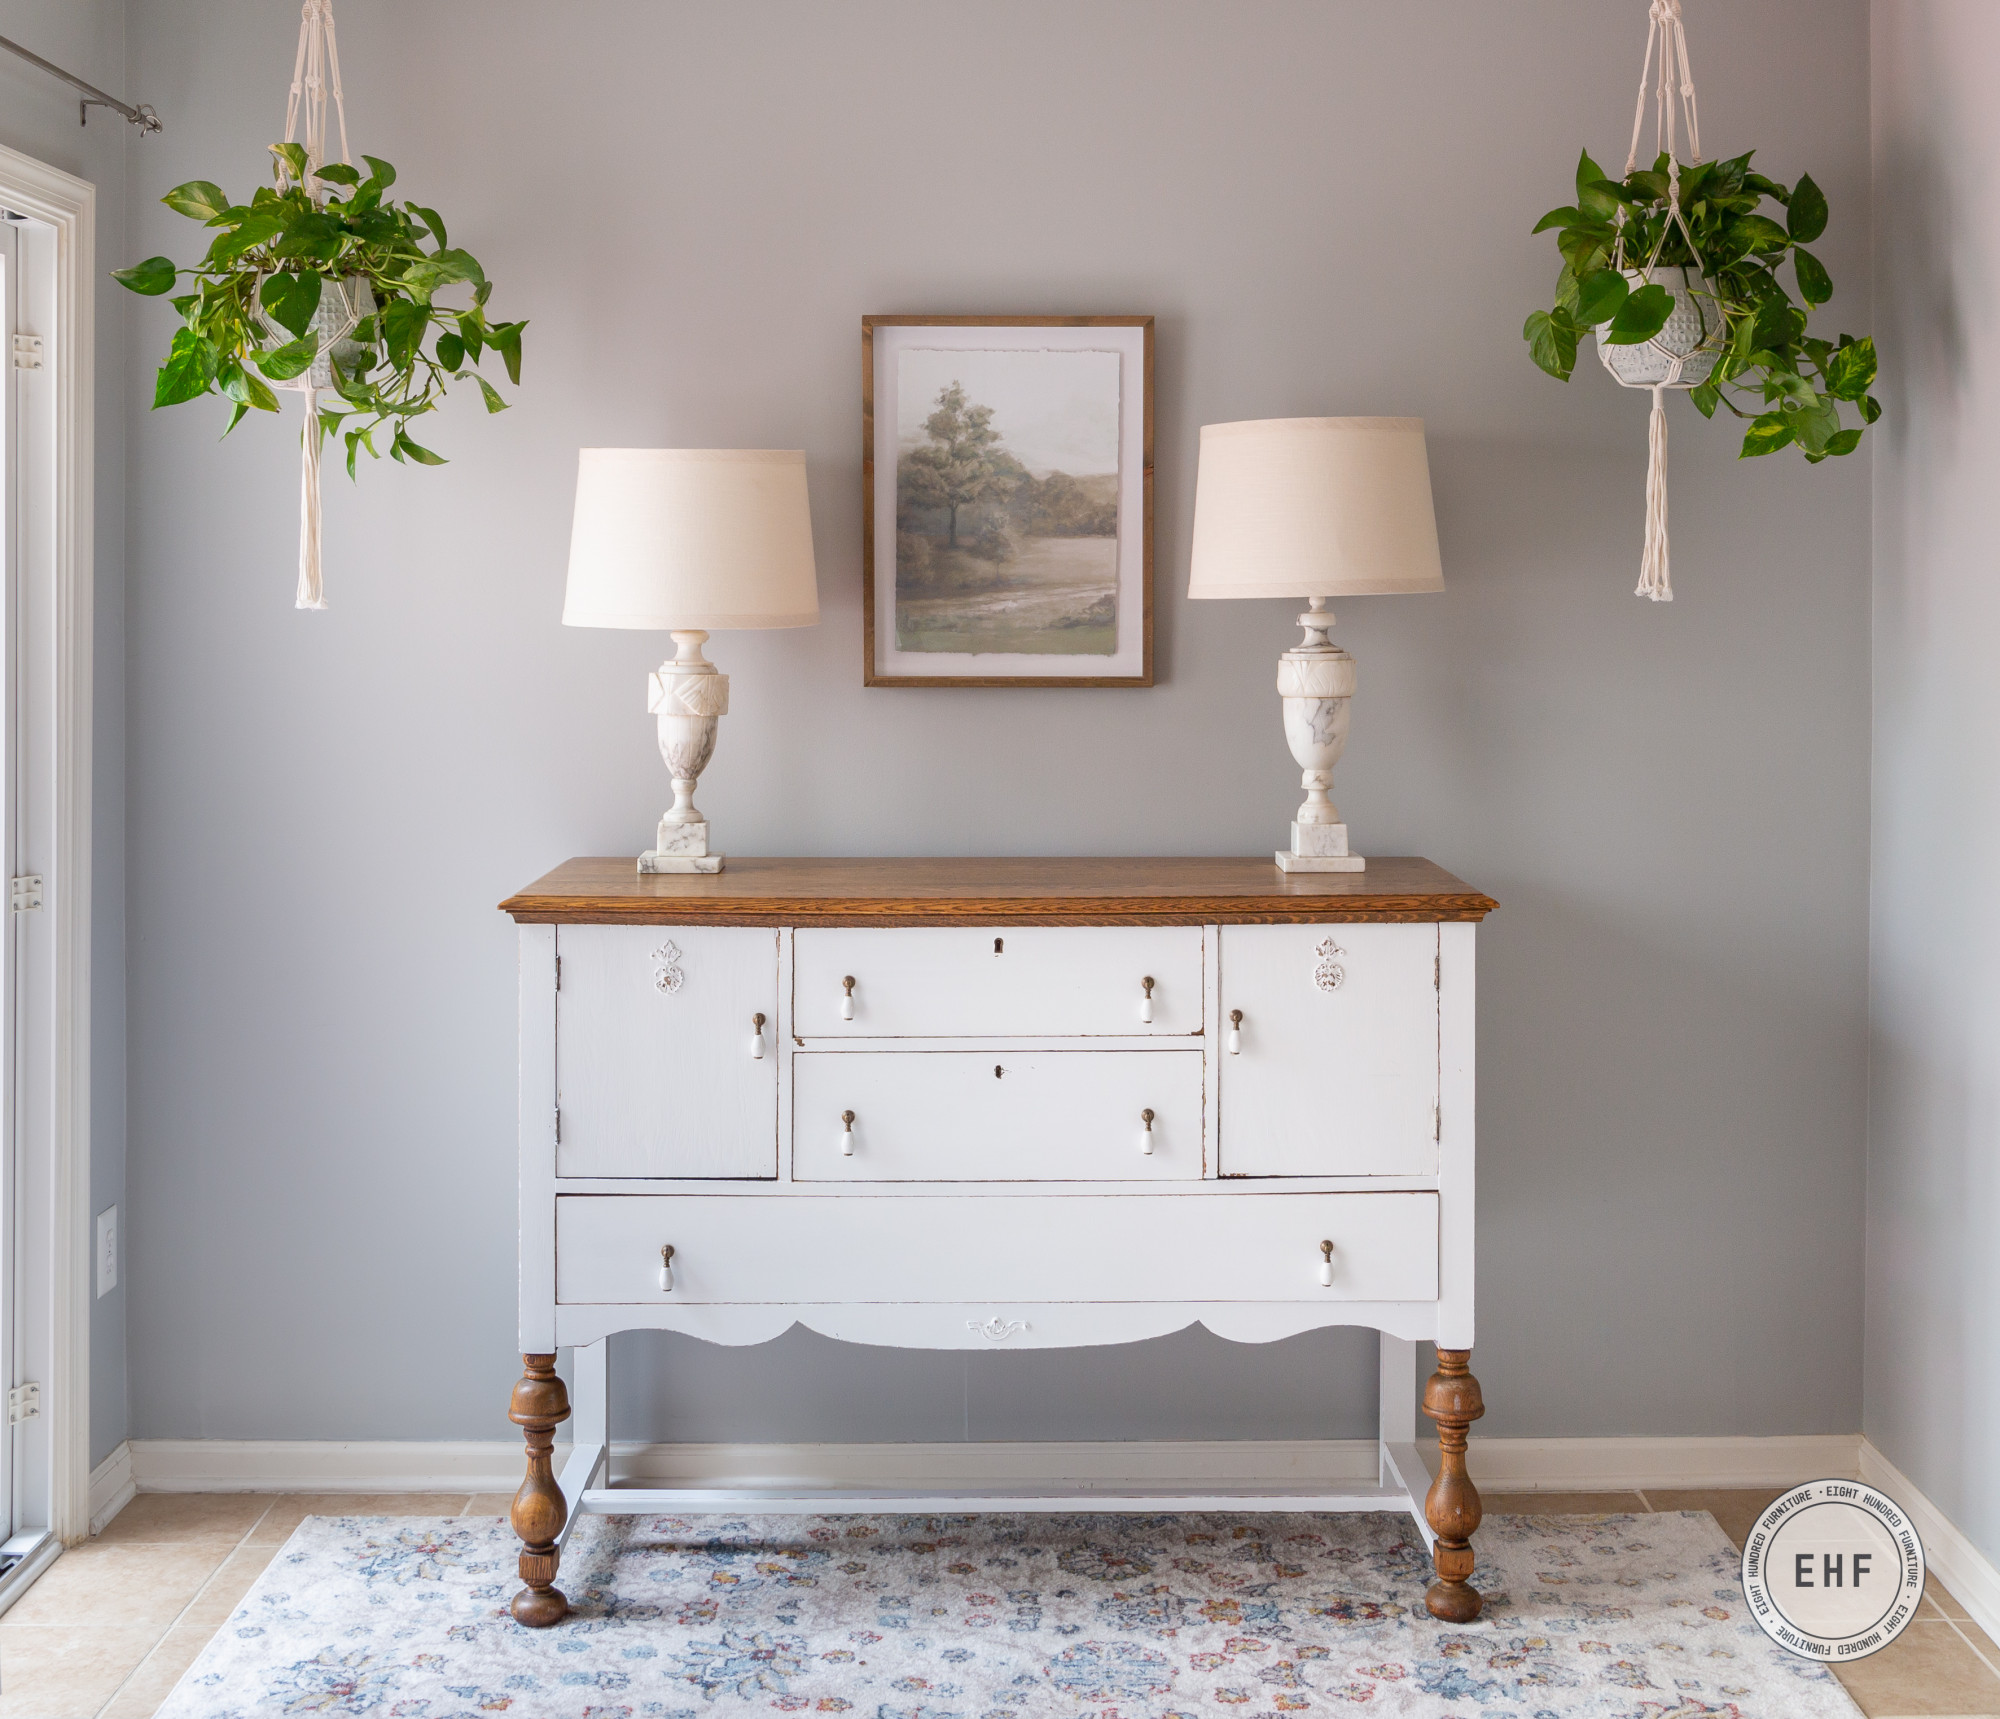 Macrame plant hangers painted in MOra Milk Paint by Miss Mustard Seed above an antique oak buffet painted in General Finishes Brushable White Enamel Flat by Eight Hundred Furniture